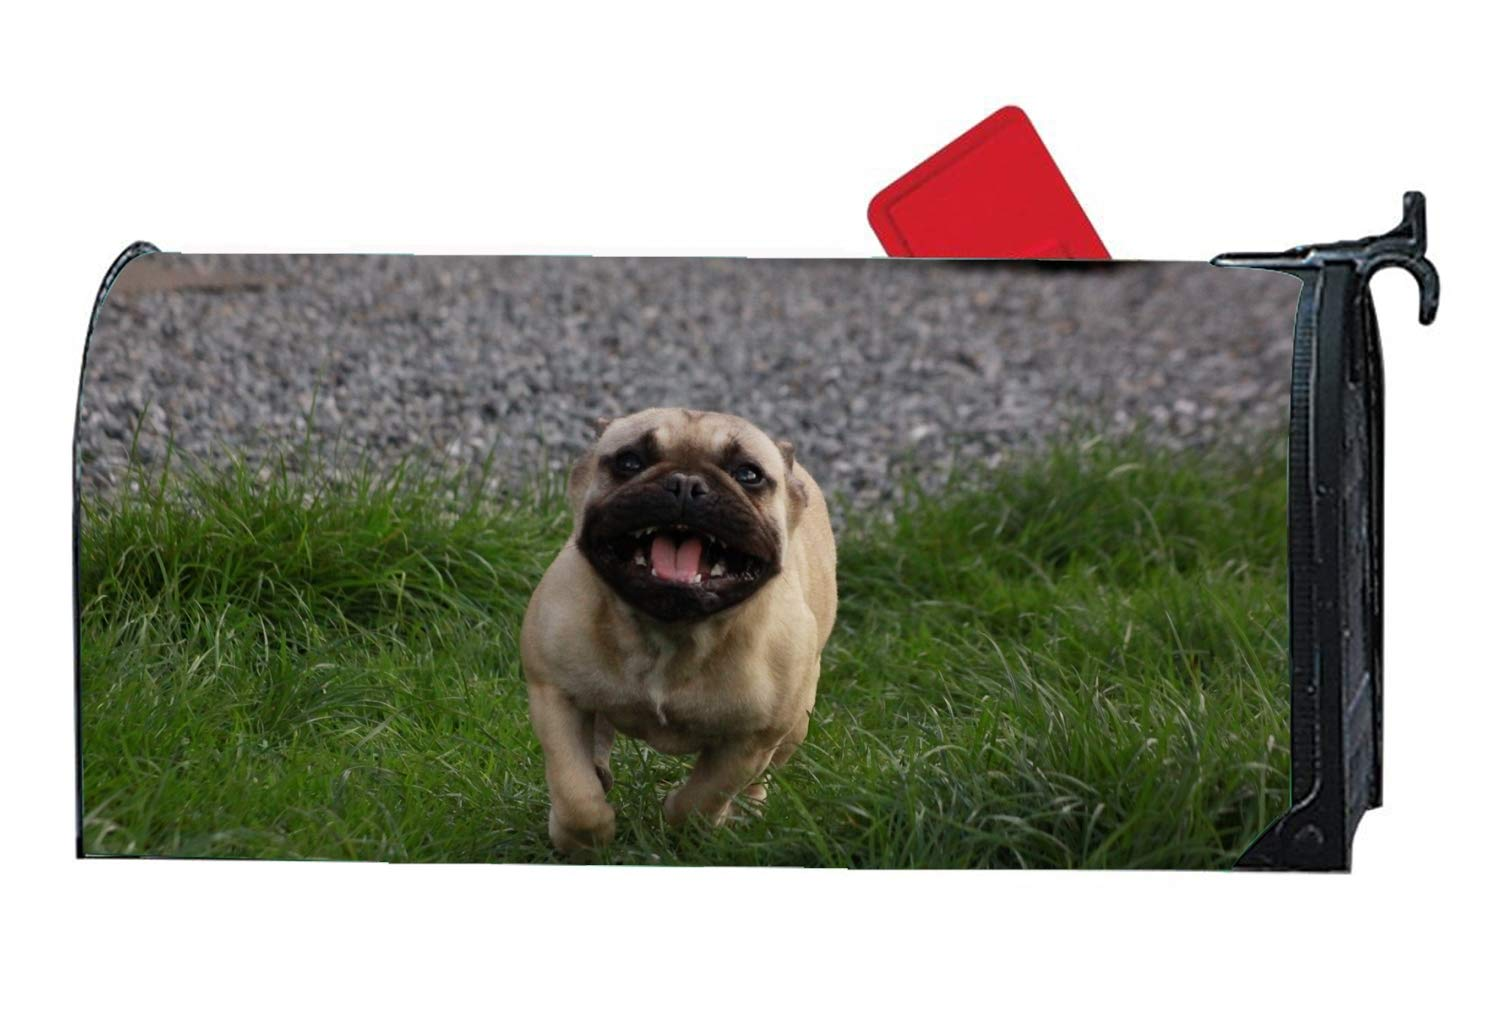 WilBstrn Dog Running Personalized Mailbox Cover Magnetic Fits Standard-Sized Mailboxes